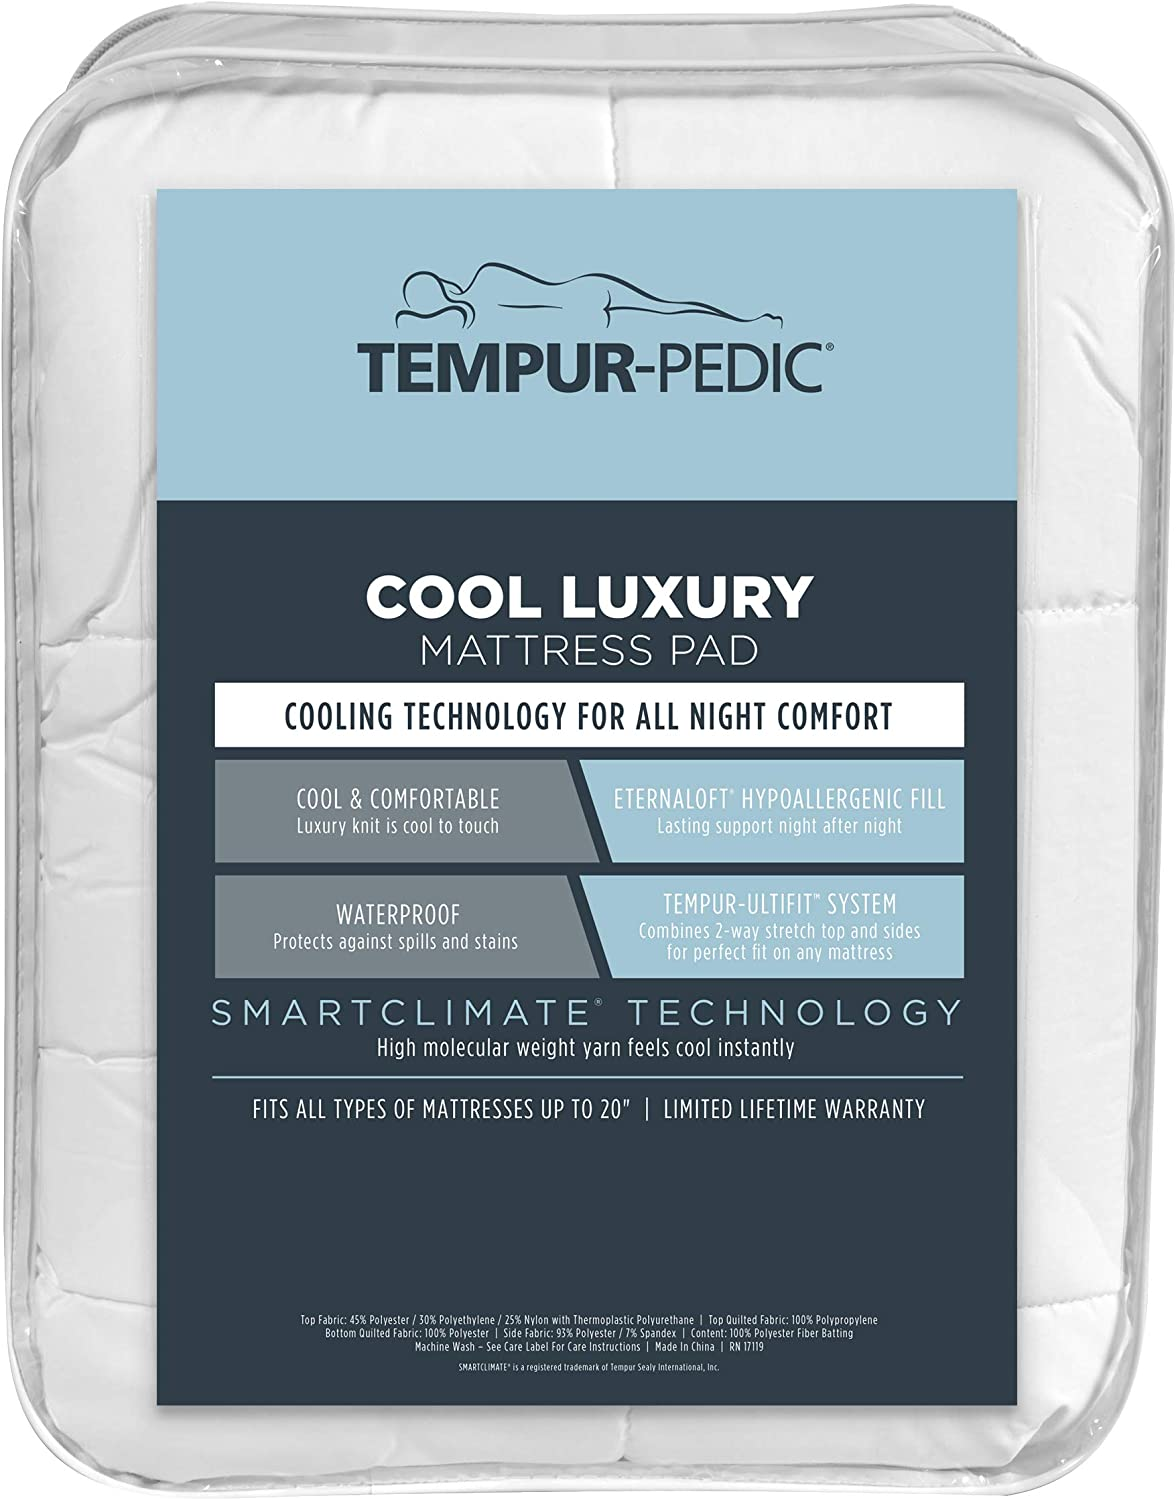 Tempur-Pedic Performance Luxury Fitted Mattress Pad – Cool, Comfortable and Hypoallergenic Protection Against Spills and Stains – Machine Washable, California King, White